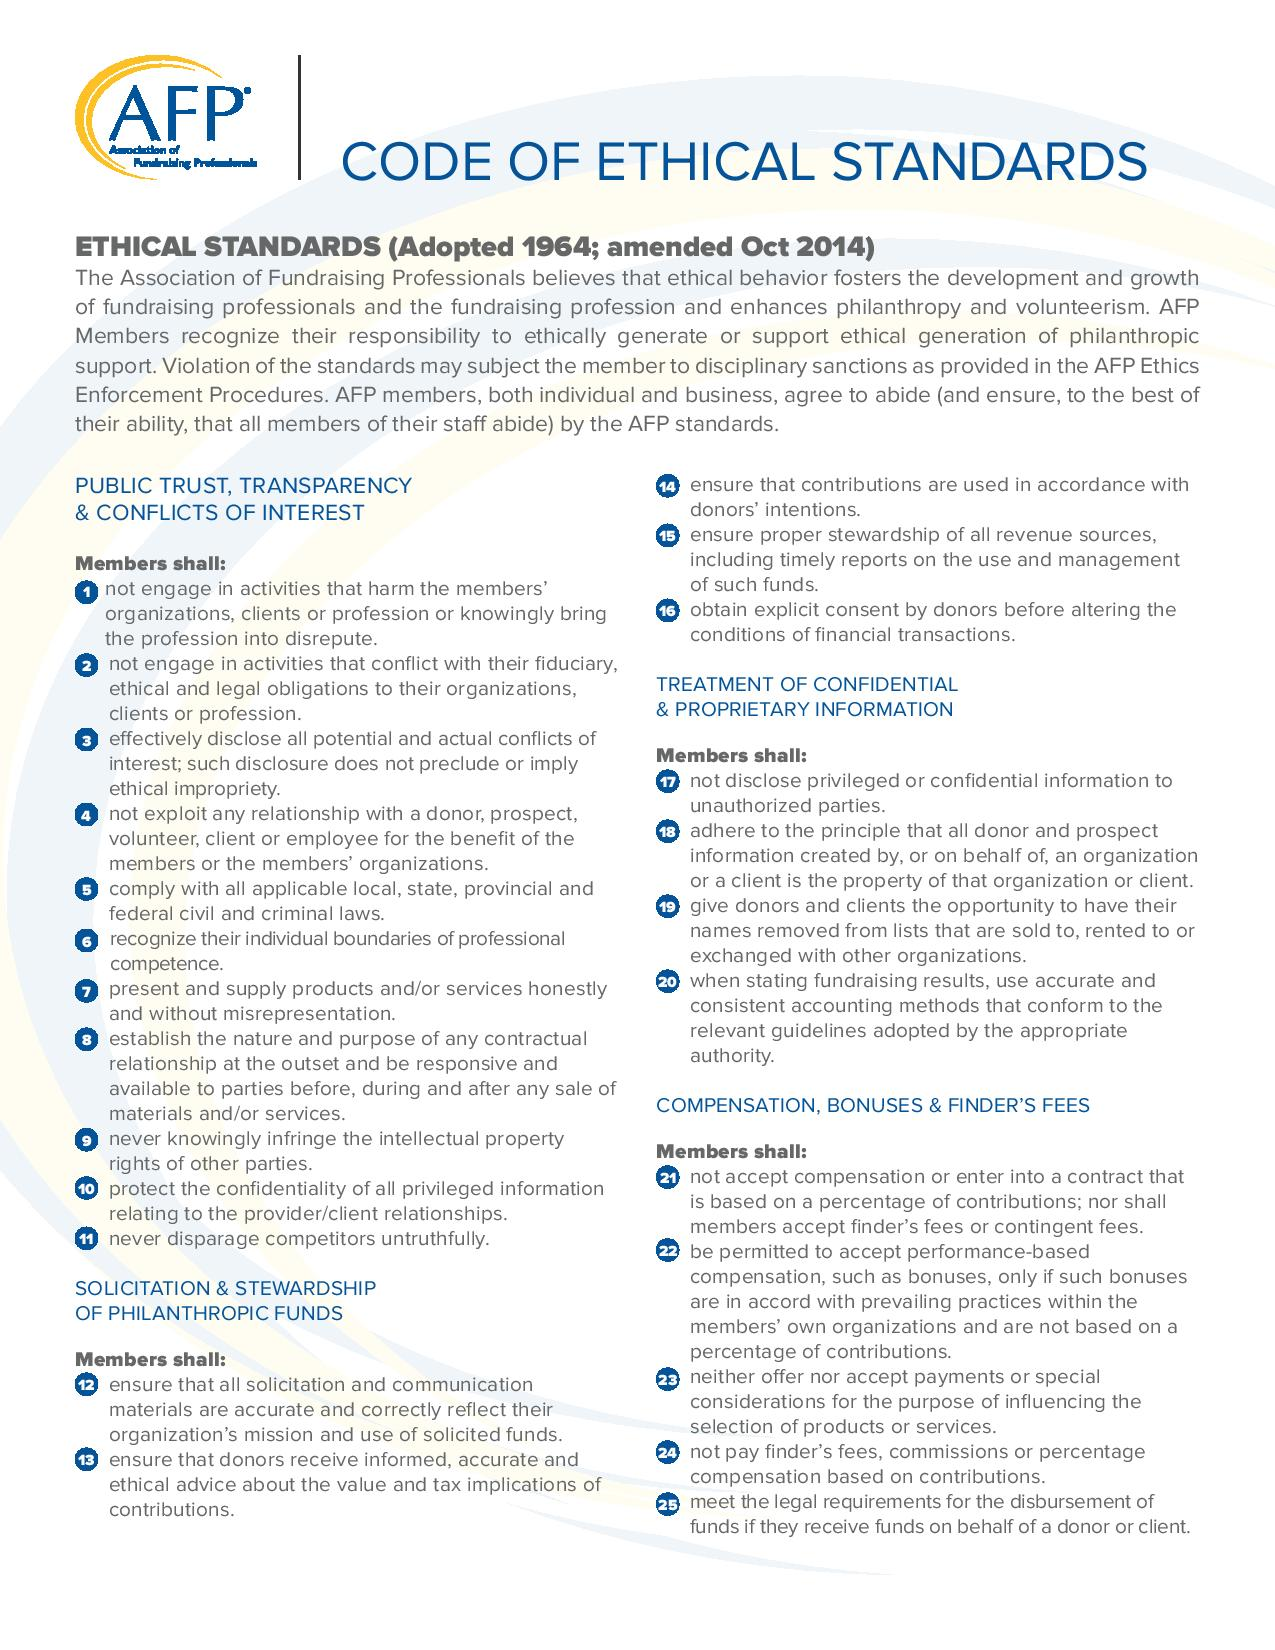 ethical standards and codes Nspe code of ethics for engineers download:  as members of this profession, engineers are expected to exhibit the highest standards of honesty and integrity .